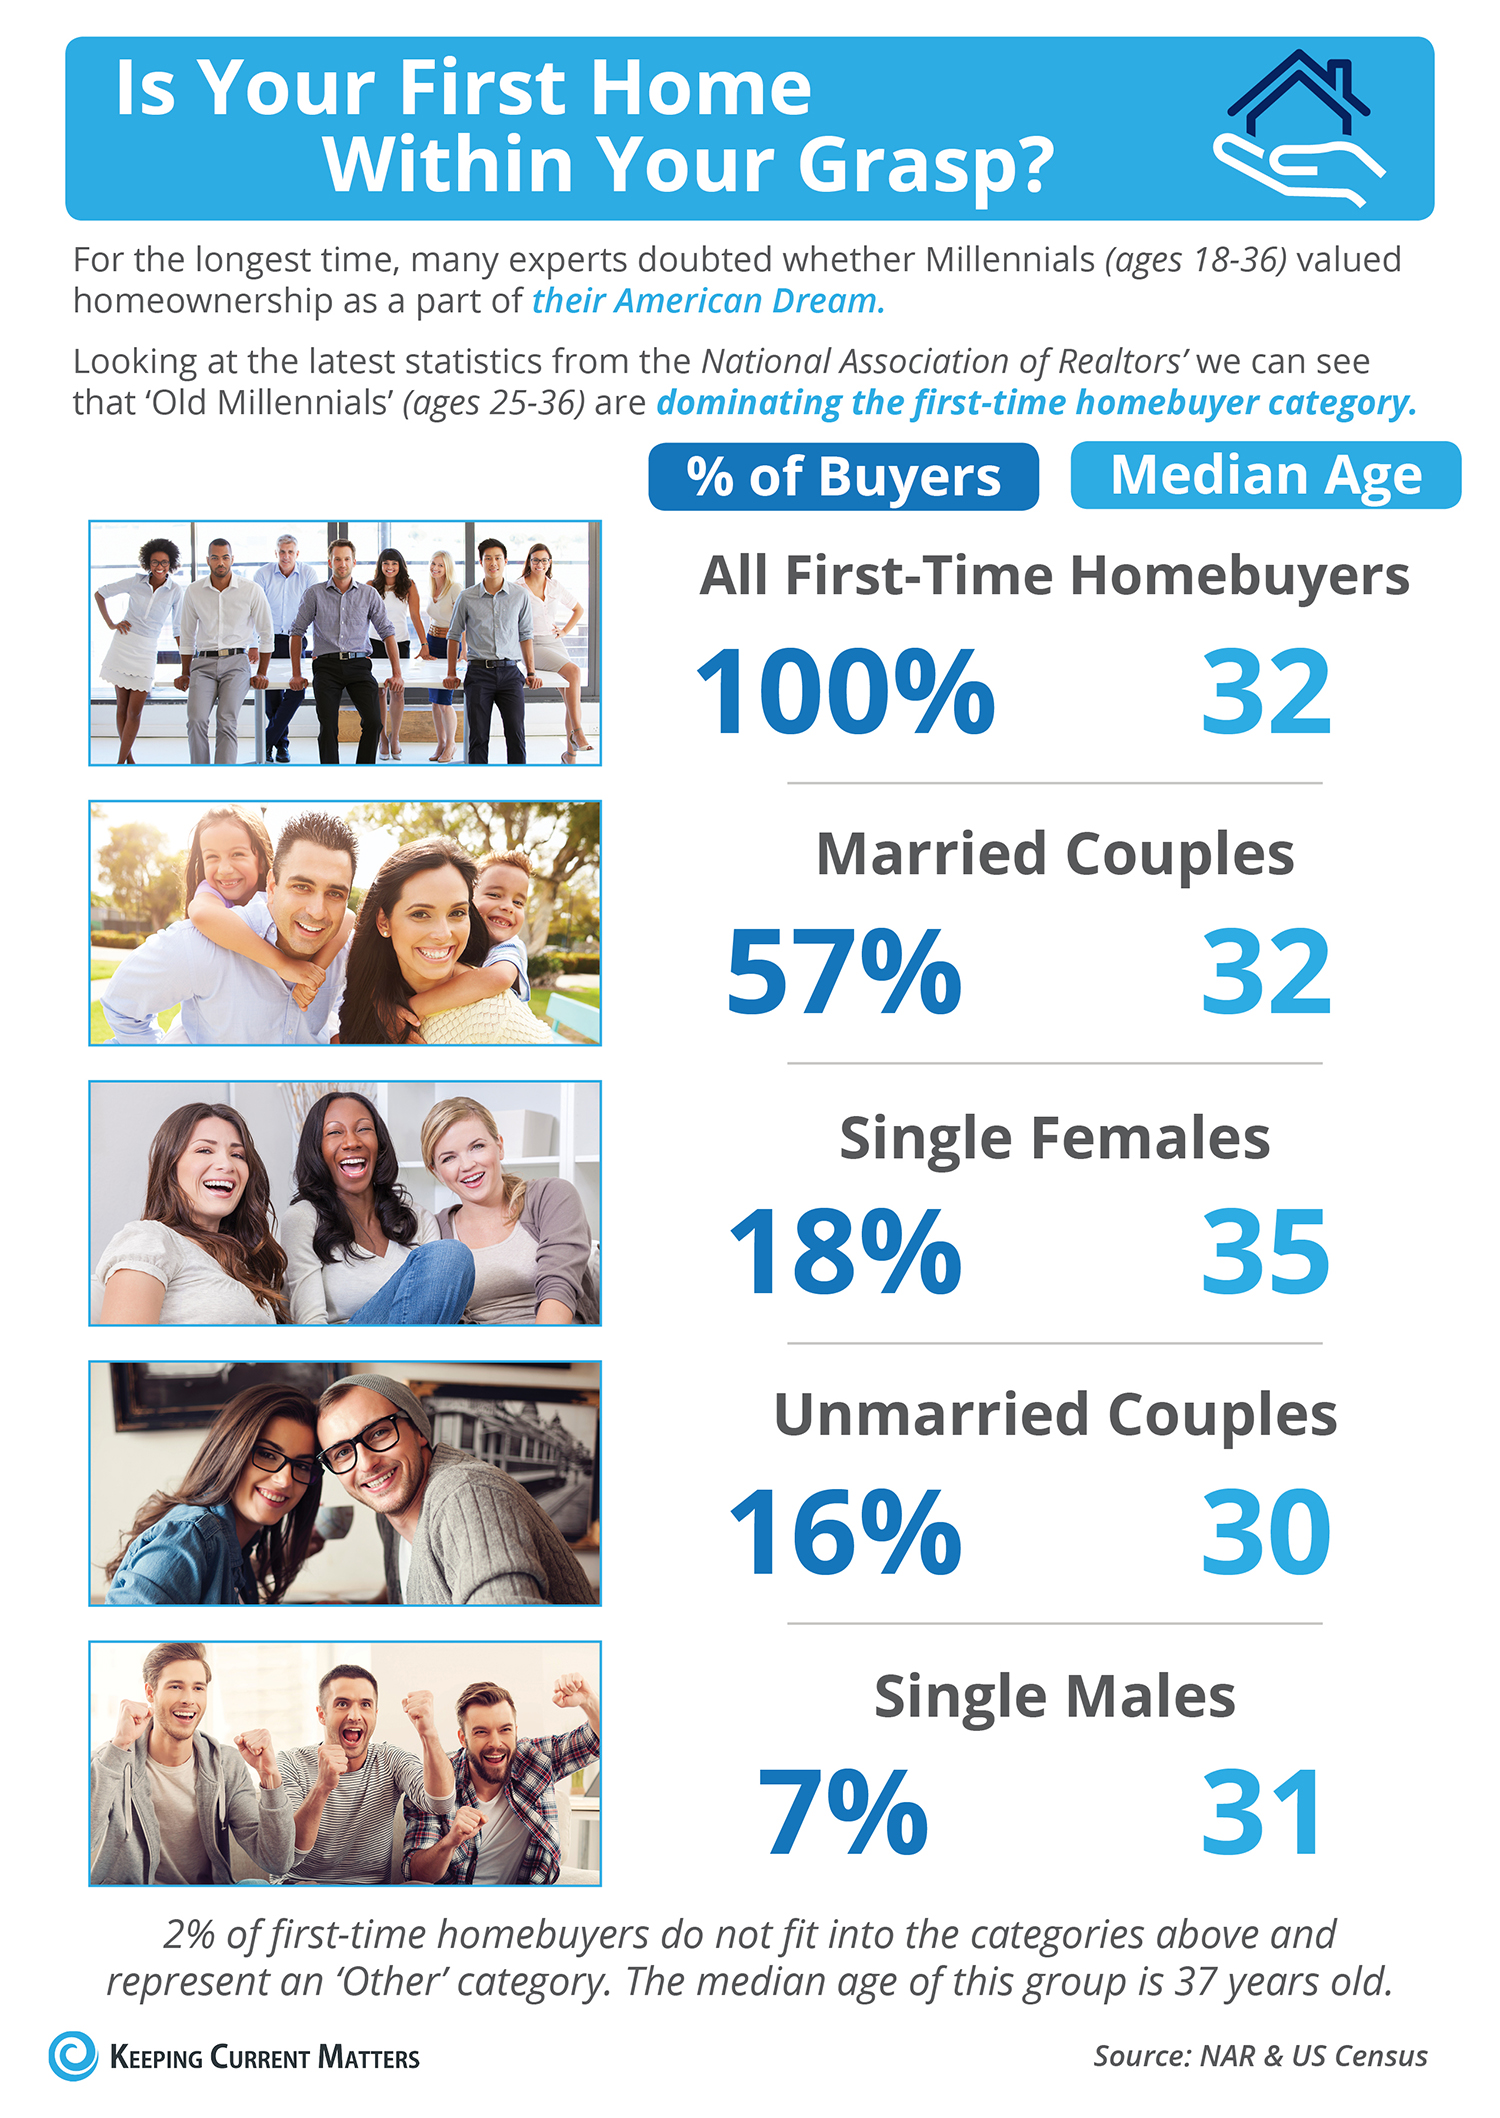 Is Your First Home Within Your Grasp Now?  [INFOGRAPHIC] | Keeping Current Matters